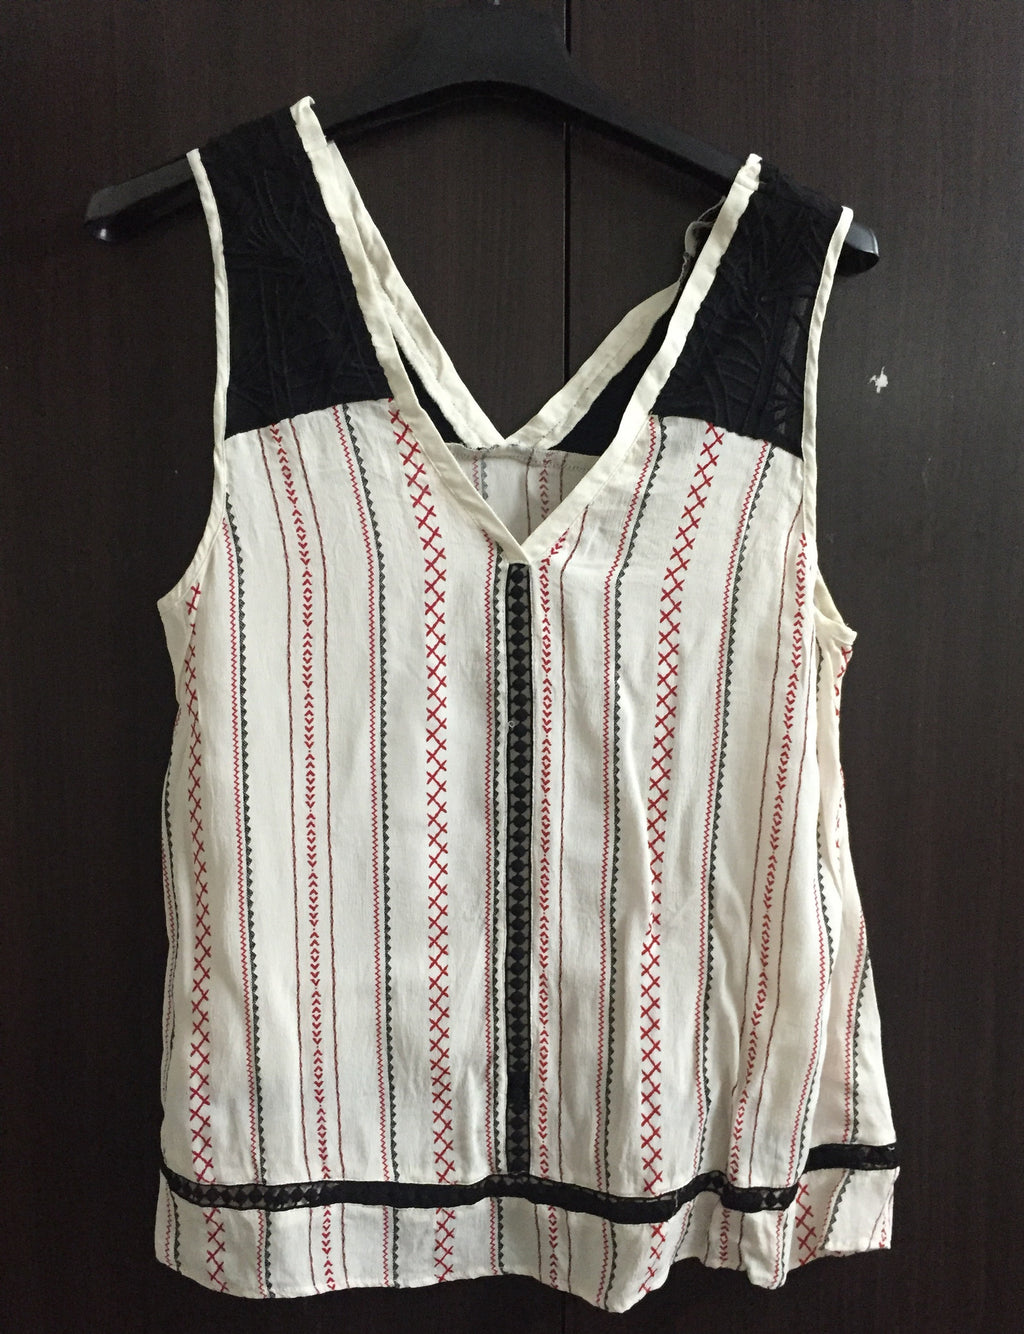 Stylish Cream and Black Sleeveless Top